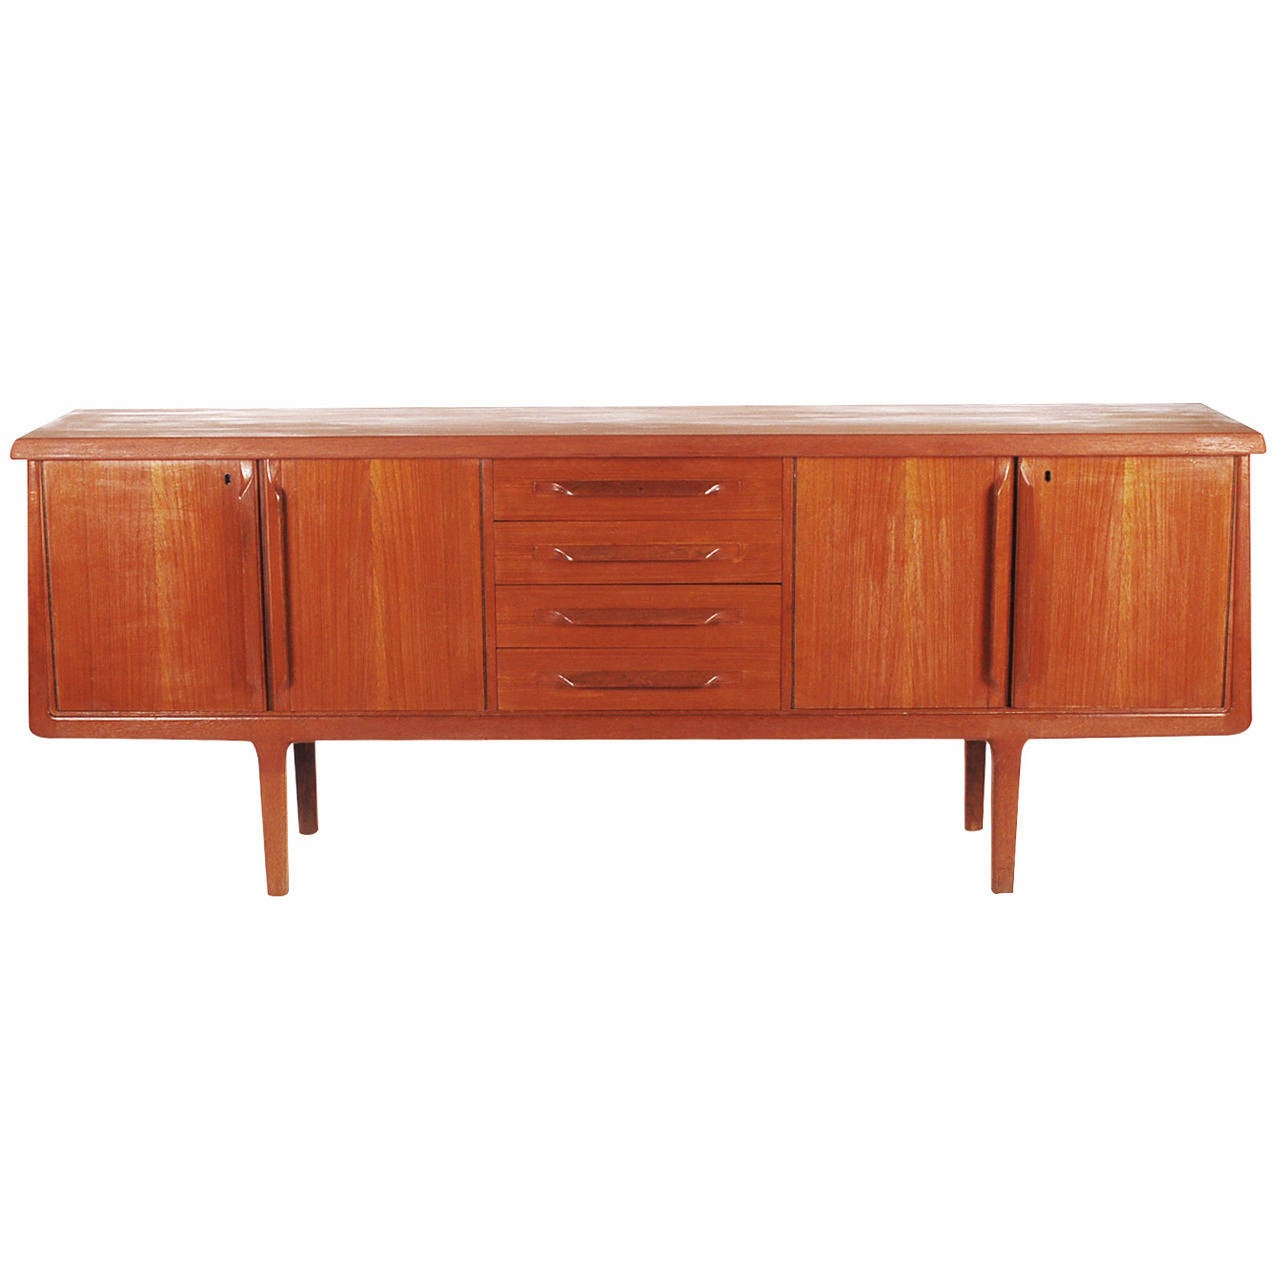 Mid-Century Modern Danish Long Teak Credenza after Kai Kristensen or Arne Vodder For Sale